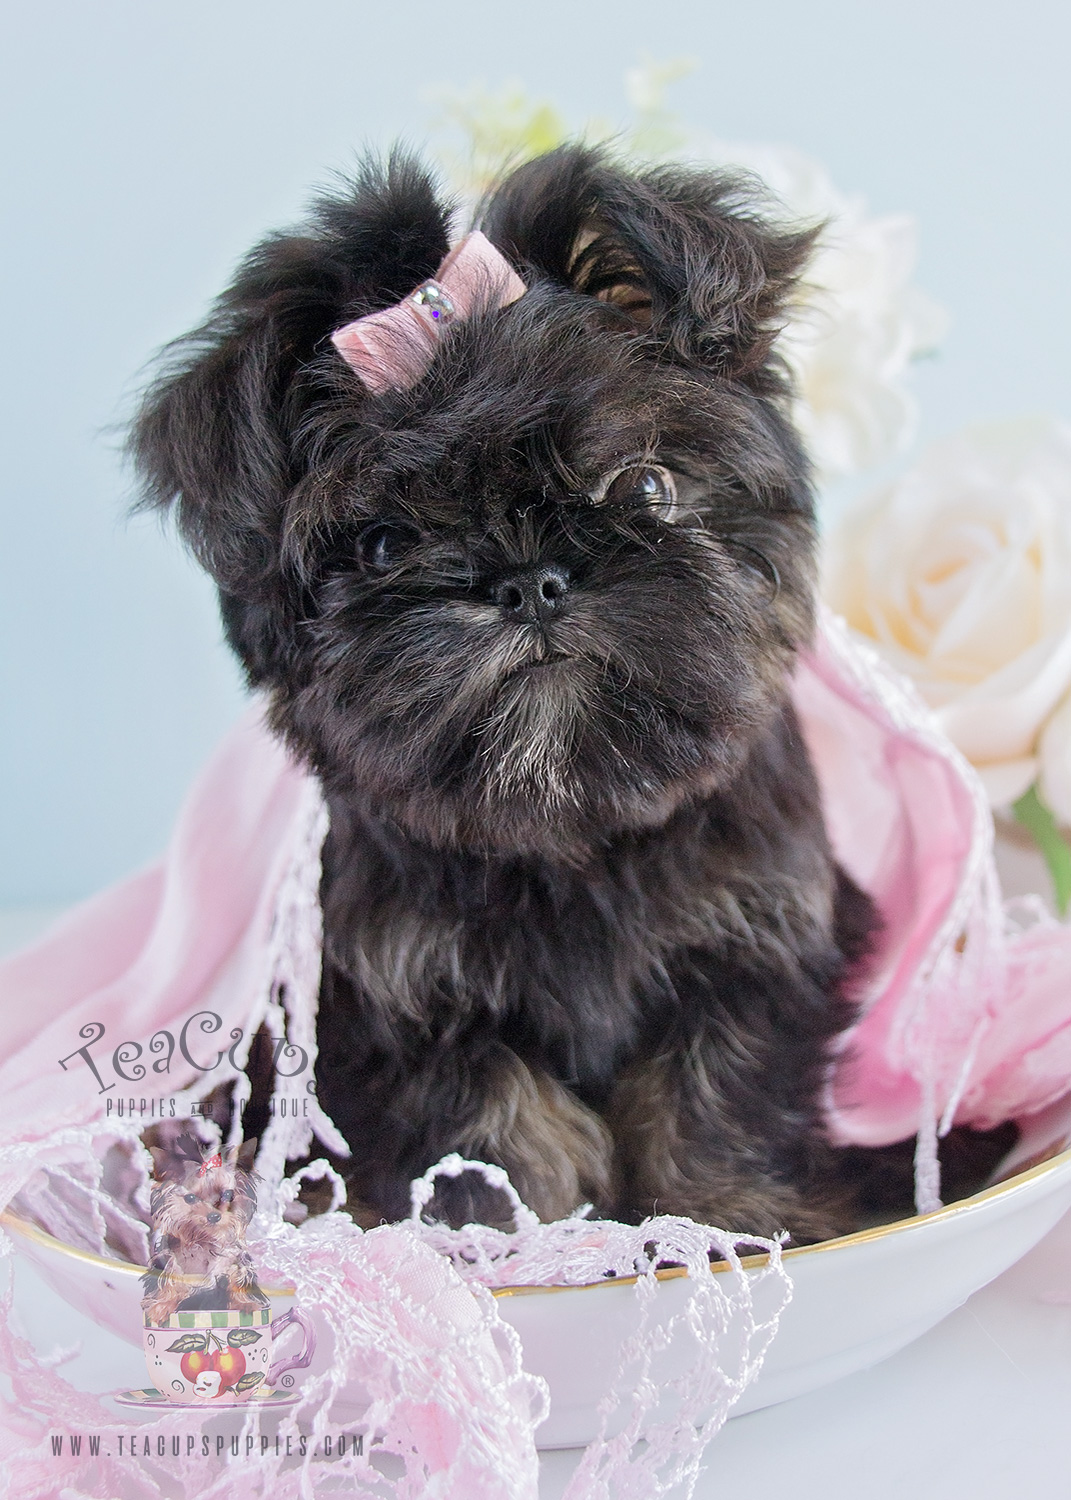 187 Teacup Puppies Brussels Griffon Puppy For-Sale